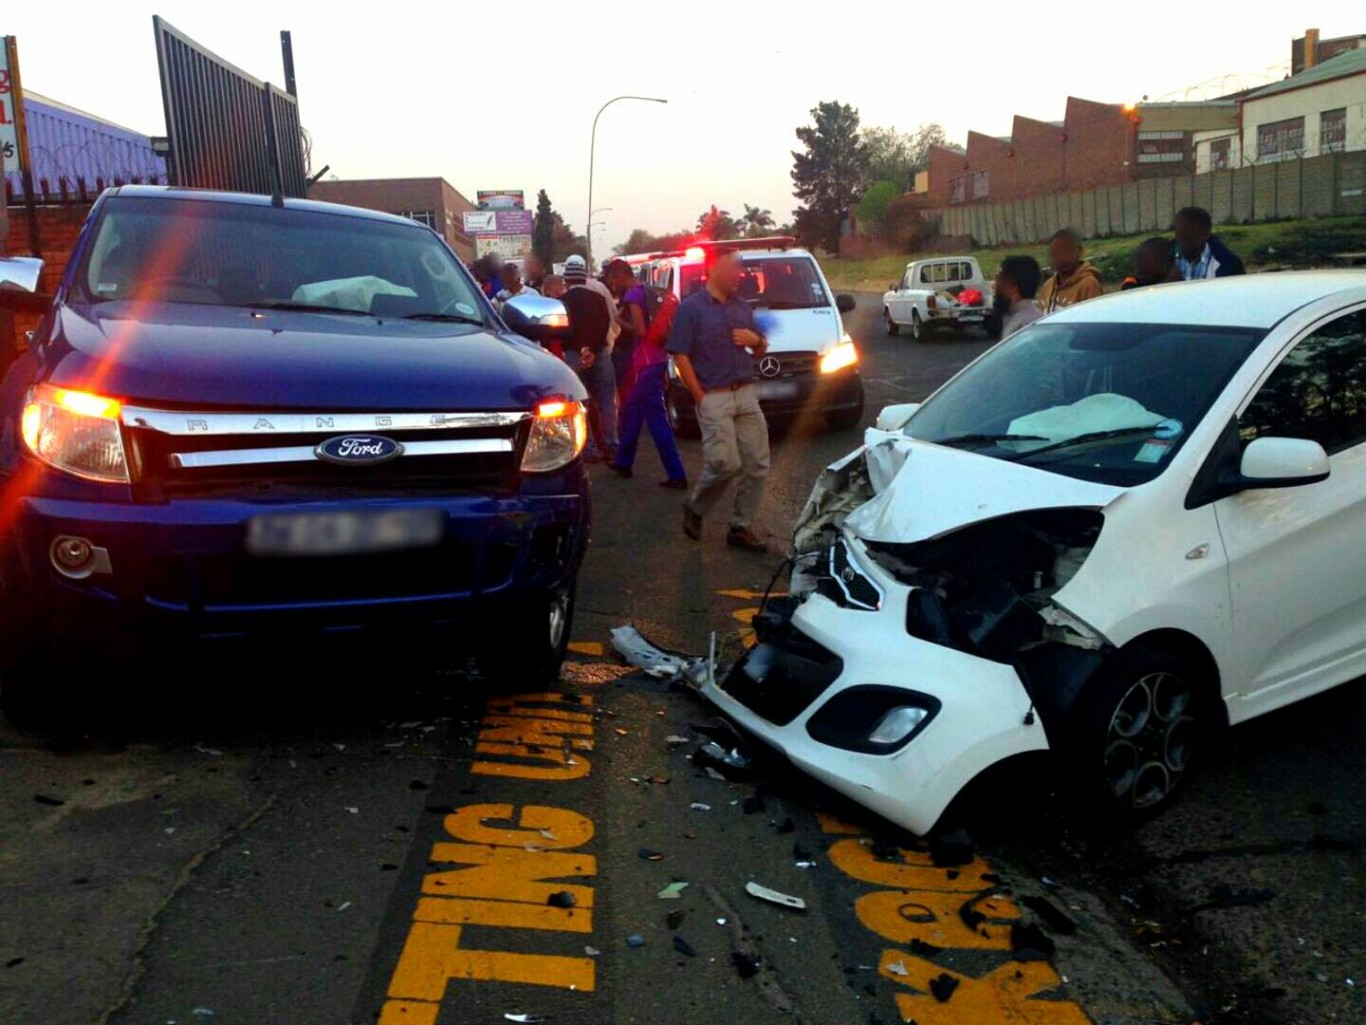 Collision after alleged illegal U-turn in Chrisville, Johannesburg.